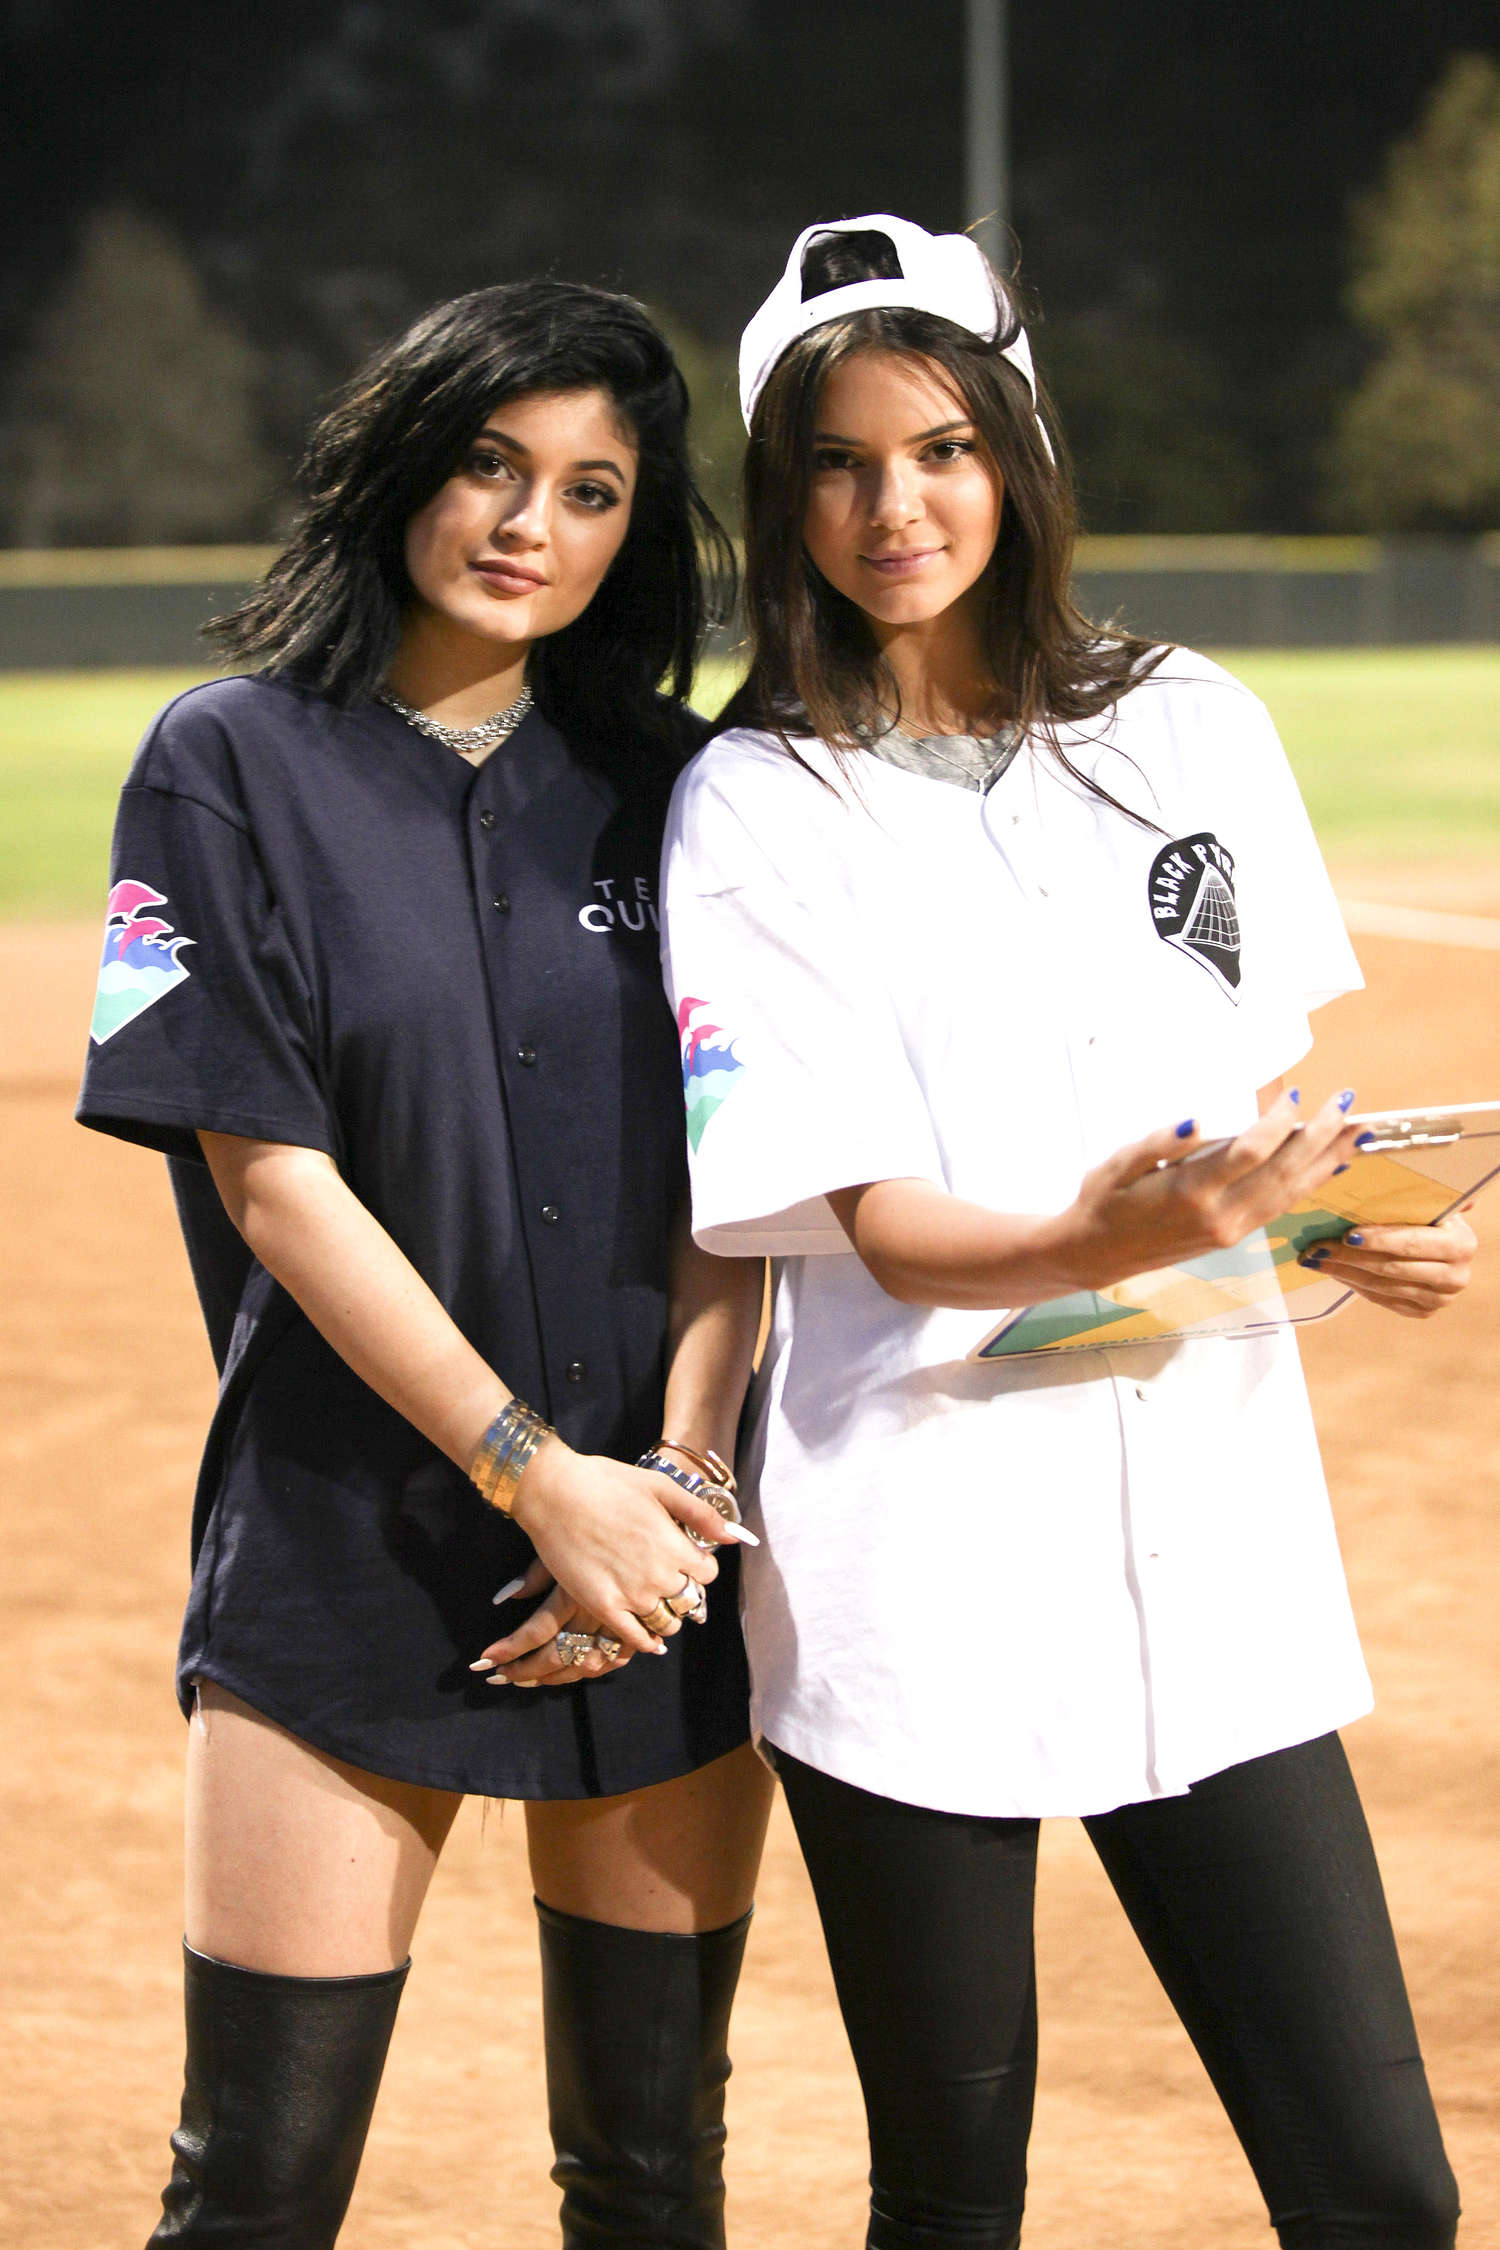 Kendall & Kylie Jenner - Kick'N It For Charity Celebrity Kick Ball Game in Glendale